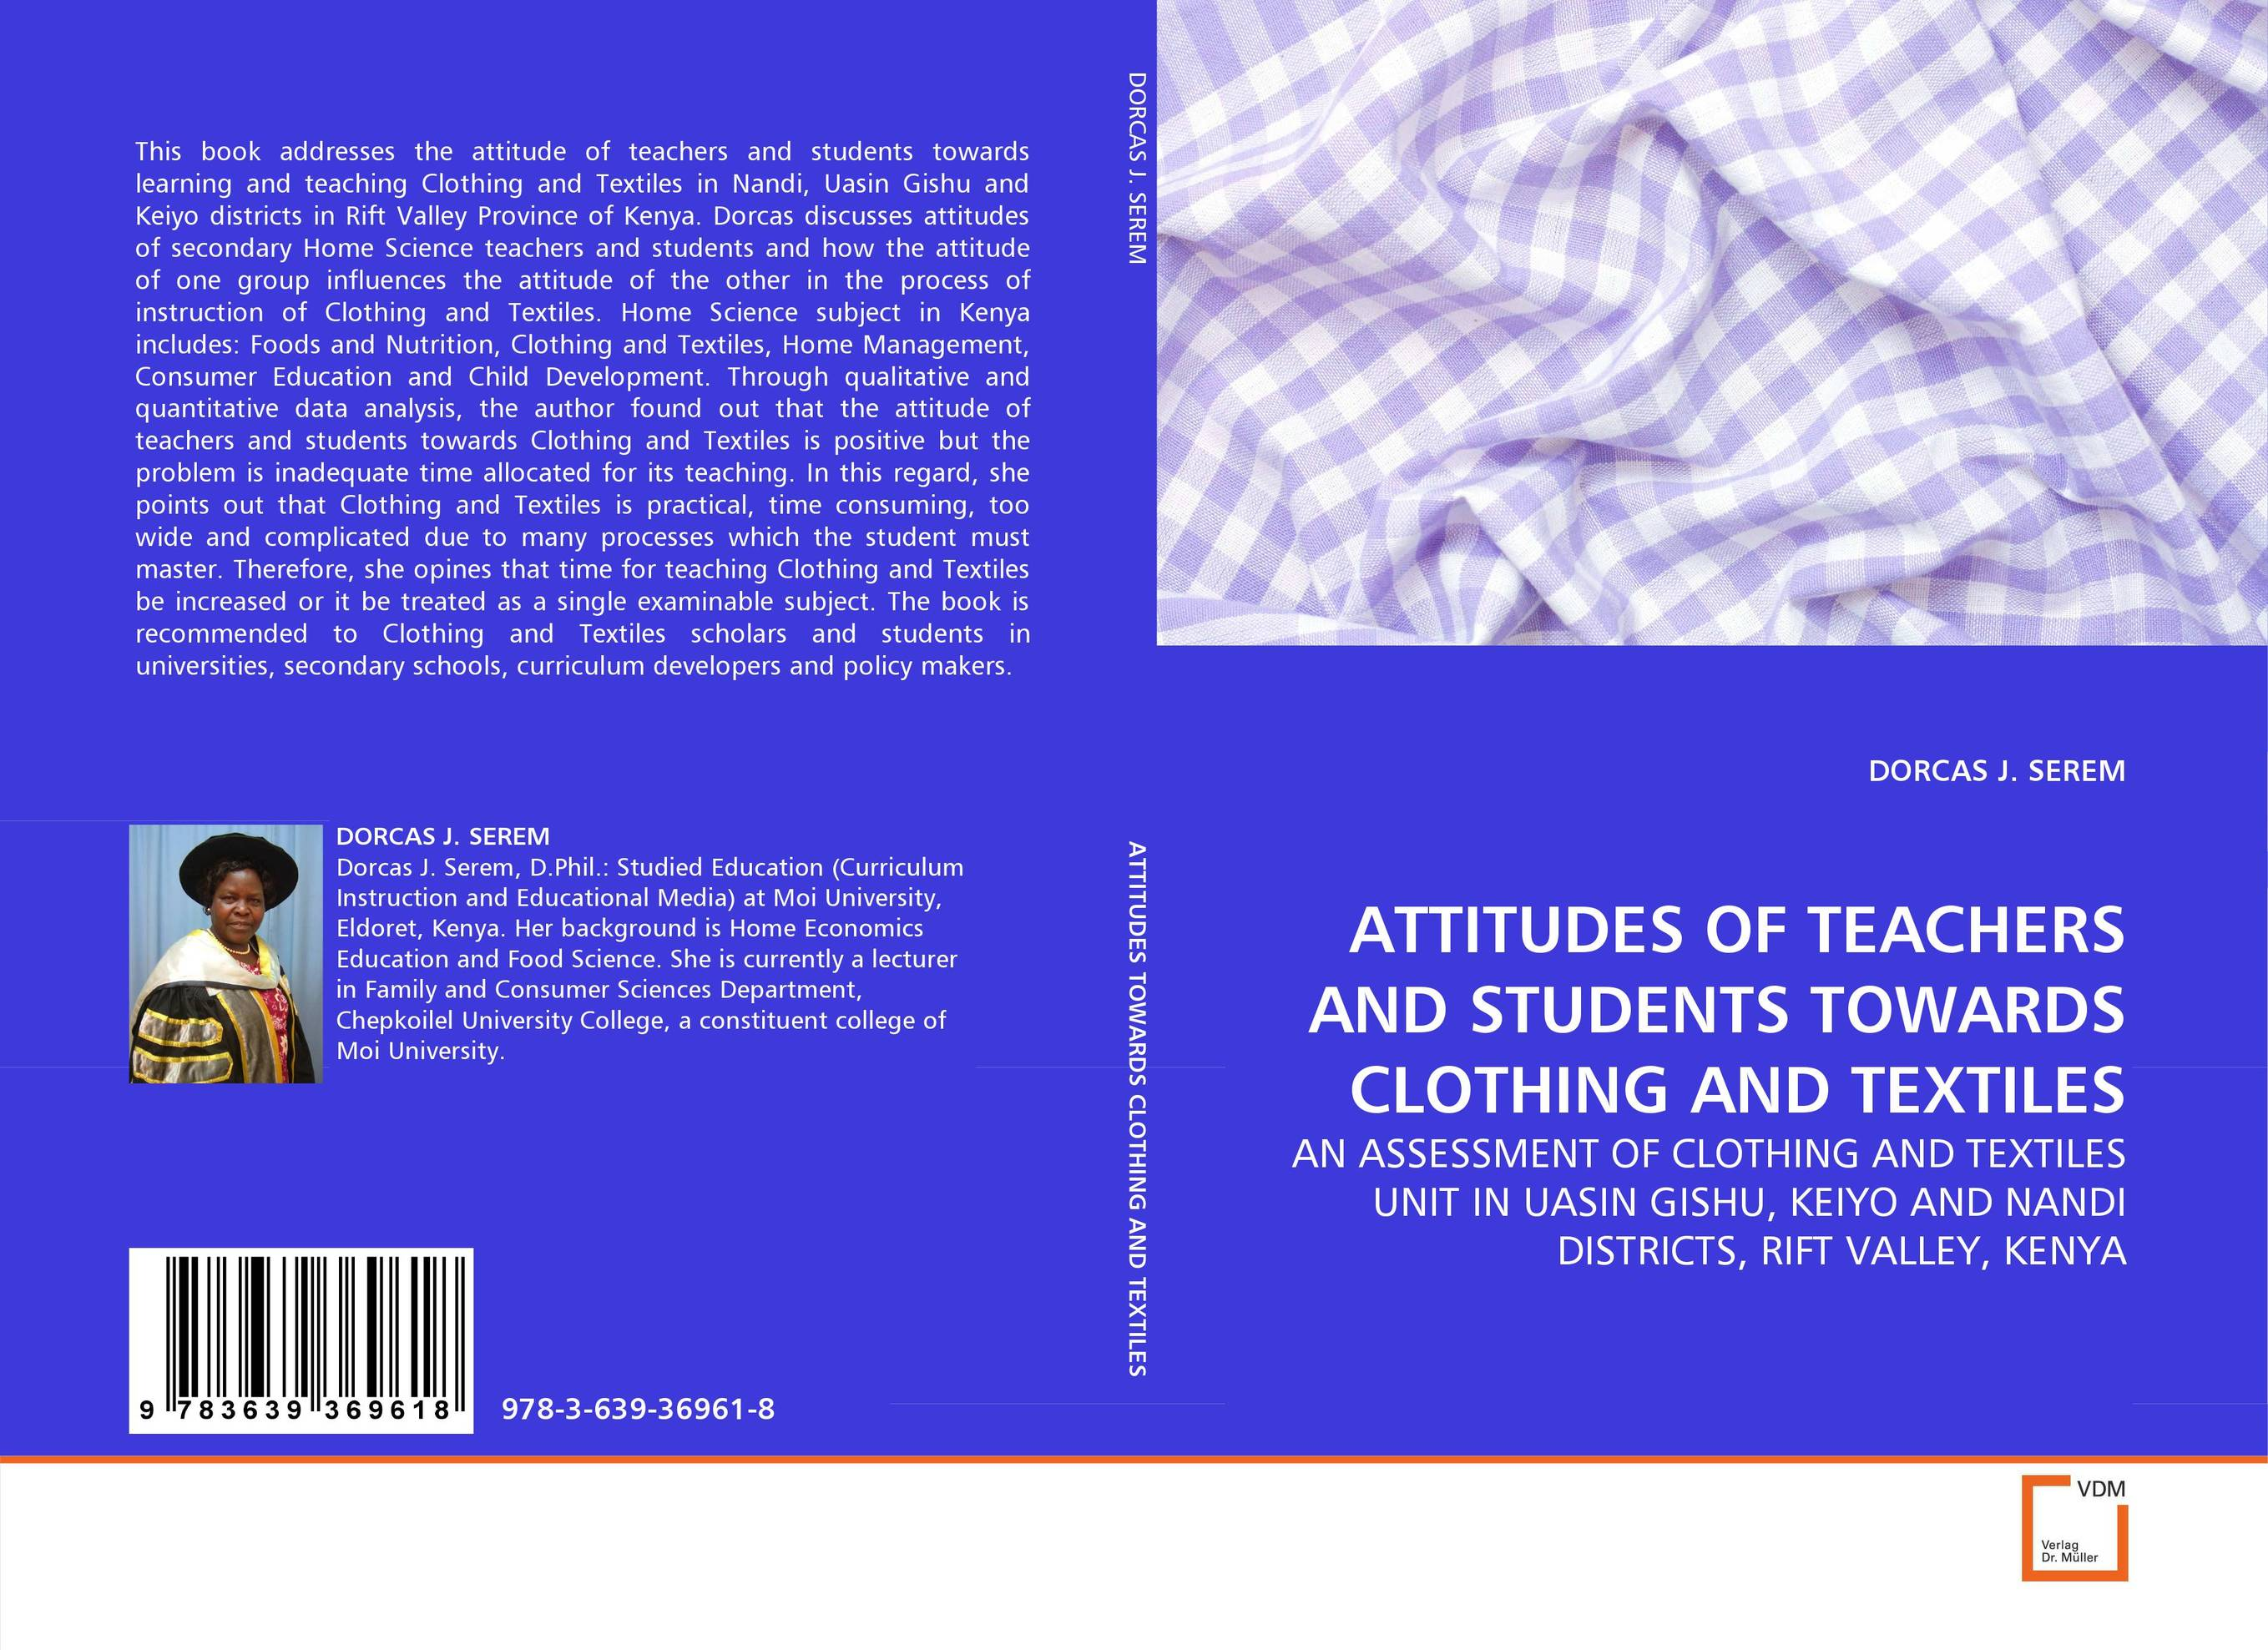 ATTITUDES OF TEACHERS AND STUDENTS TOWARDS CLOTHING AND TEXTILES natural dyes for textiles